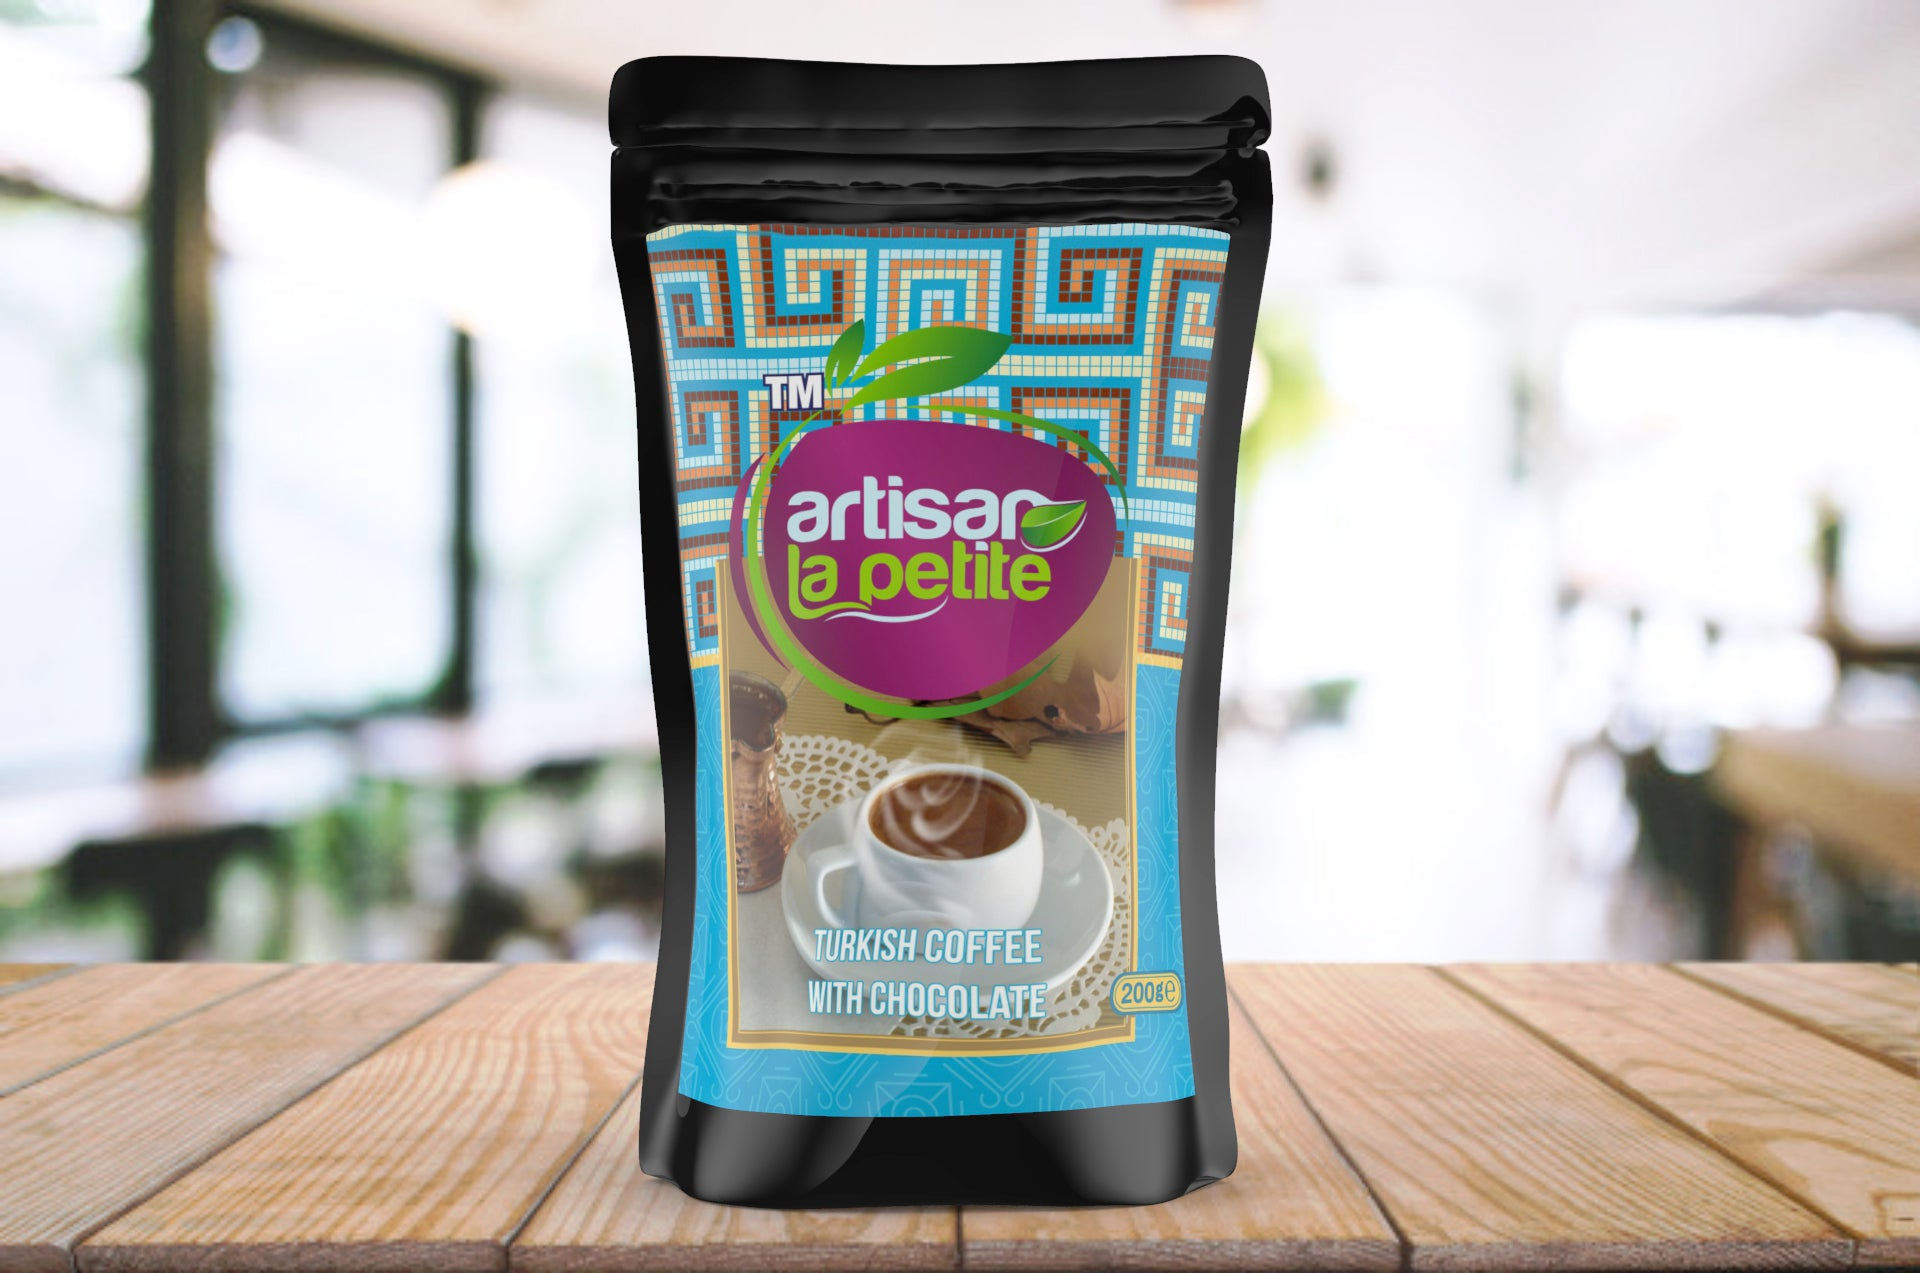 Artisan La Petite Turkish Coffee with Chocolate 200g / 7.05oz Doypack | Premium Fine Ground Arabica Coffee, Medium Roast, Authentic Turkish Specialty, Fresh Roasted, Non-GMO, Vegan, Halal